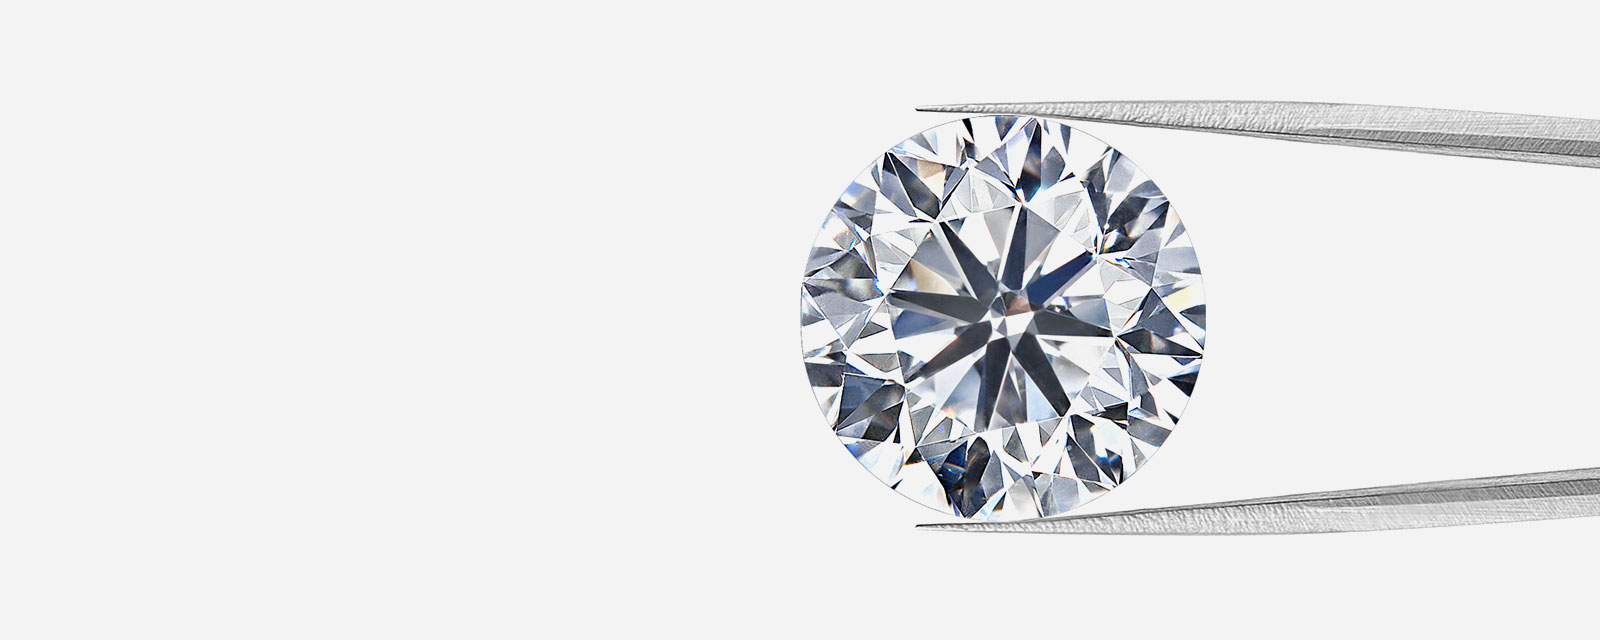 Find Your Perfect Diamond Browse our extensive selection of natural and lab-grown diamonds. Coughlin Jewelers St. Clair, MI